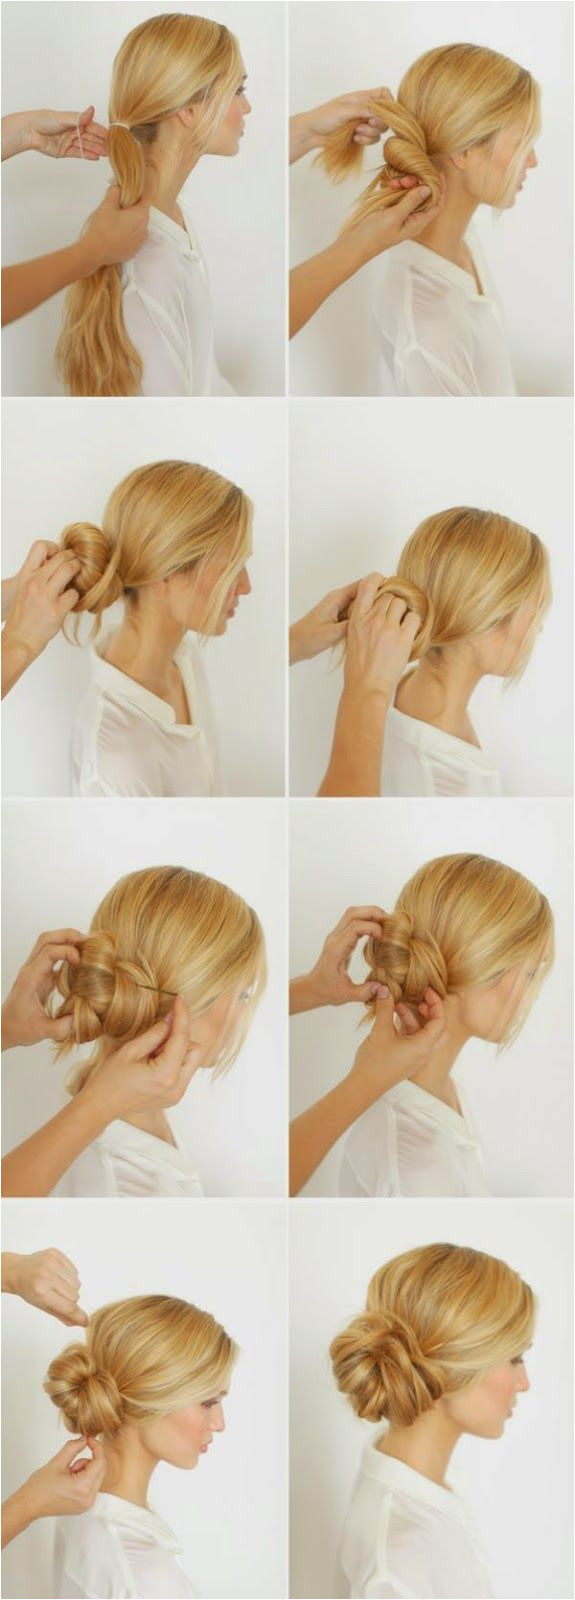 KNOTTED BUN TUTORIAL